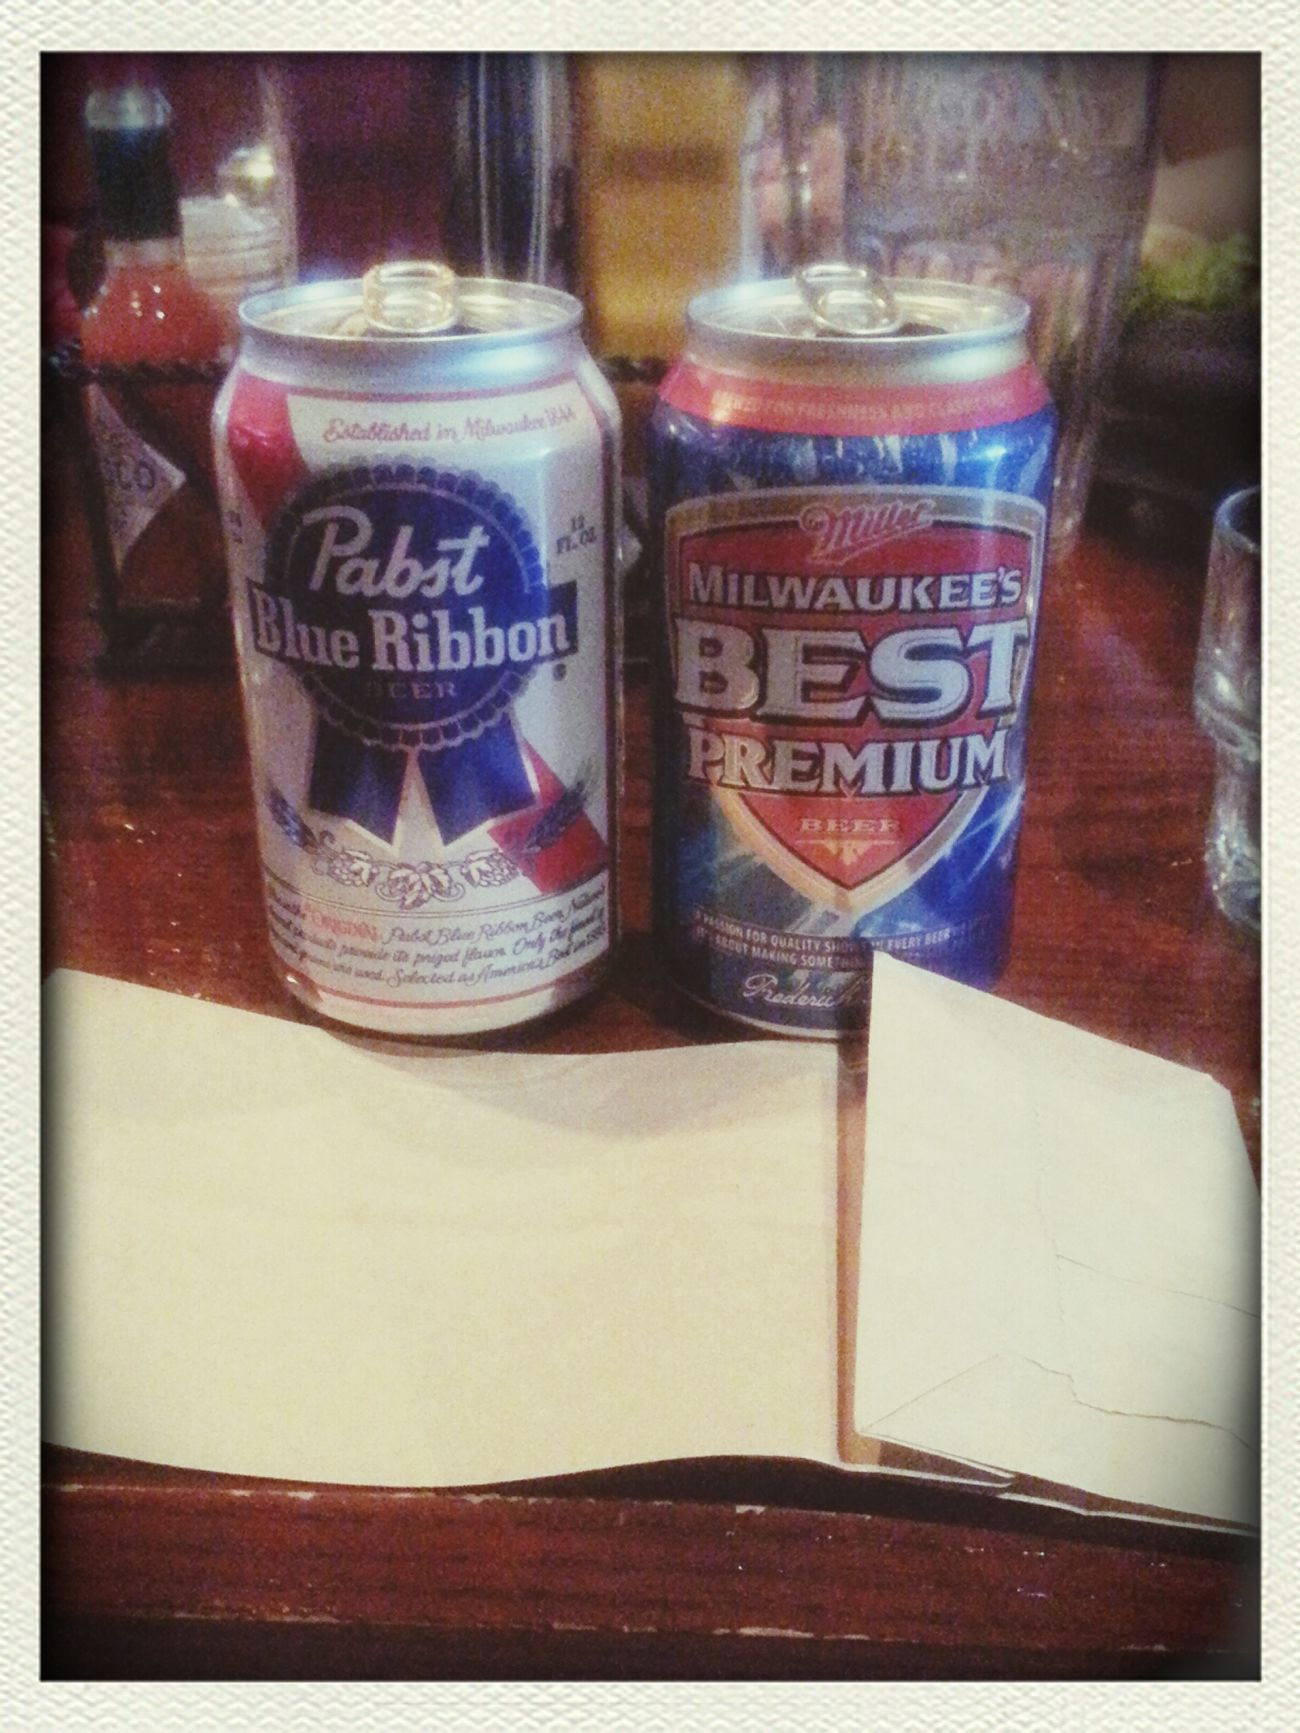 Bag o'beer time. I got PBR and Carlos got Milwaukee's Best. Good times with my besties.